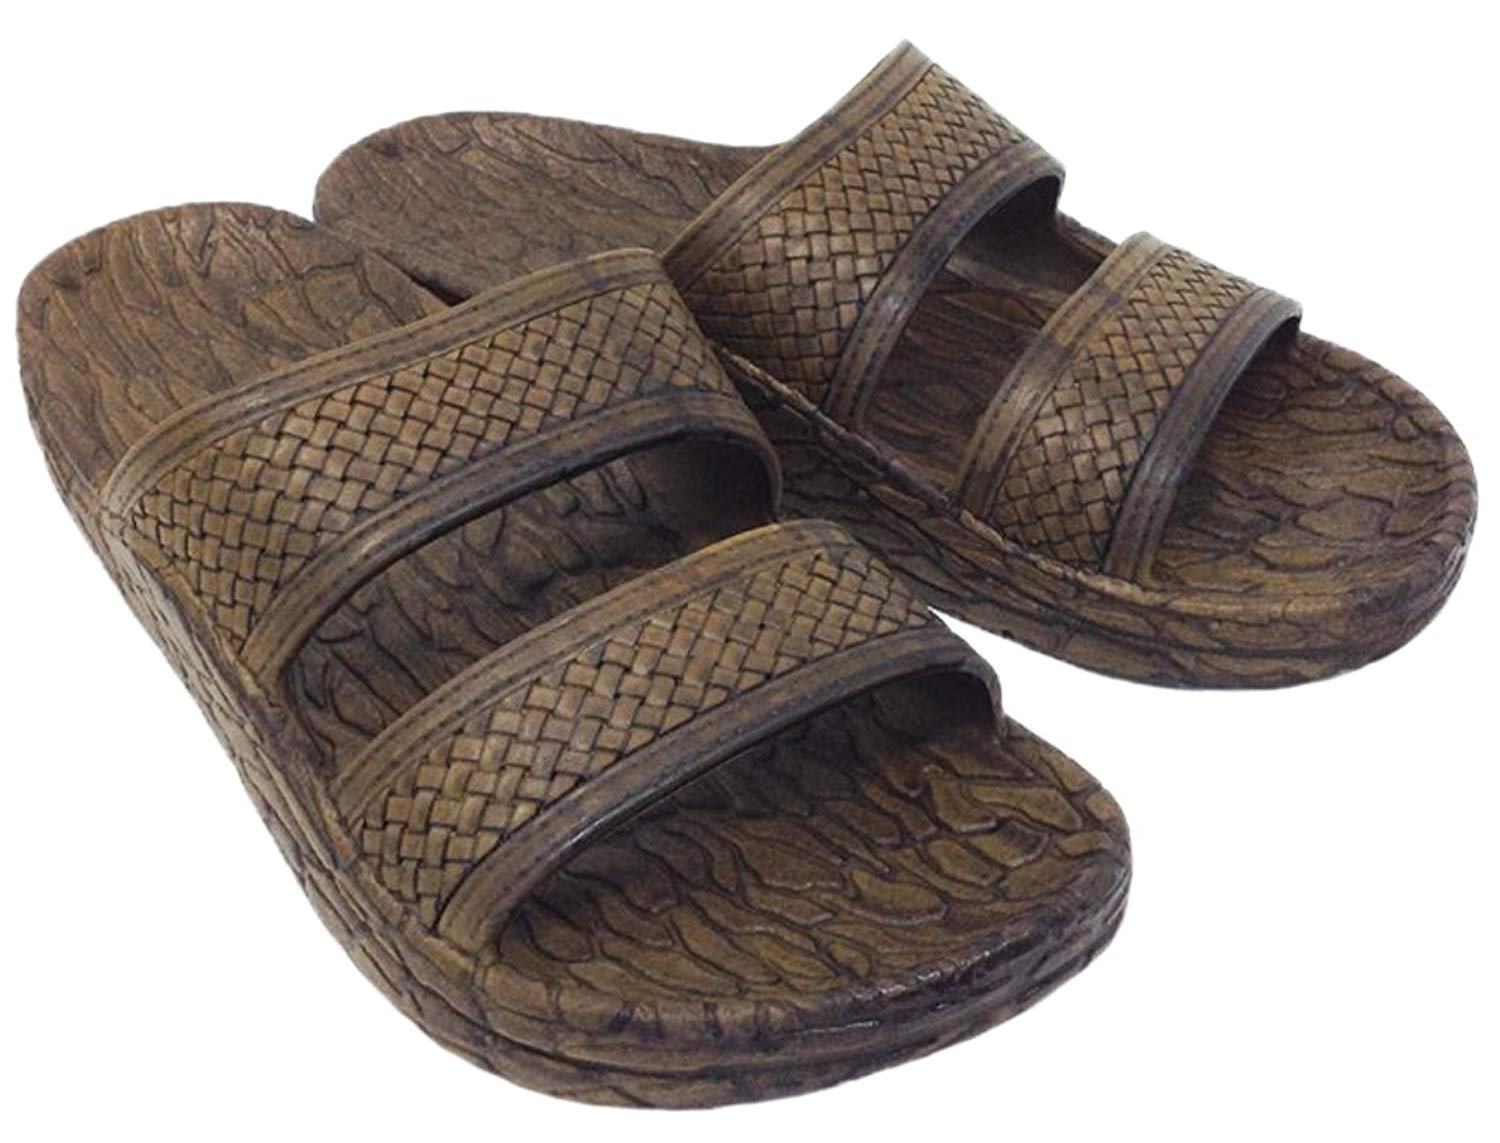 0a0f6caeb3 Buy Pali Hawaii Classic Jesus Sandals in Cheap Price on Alibaba.com